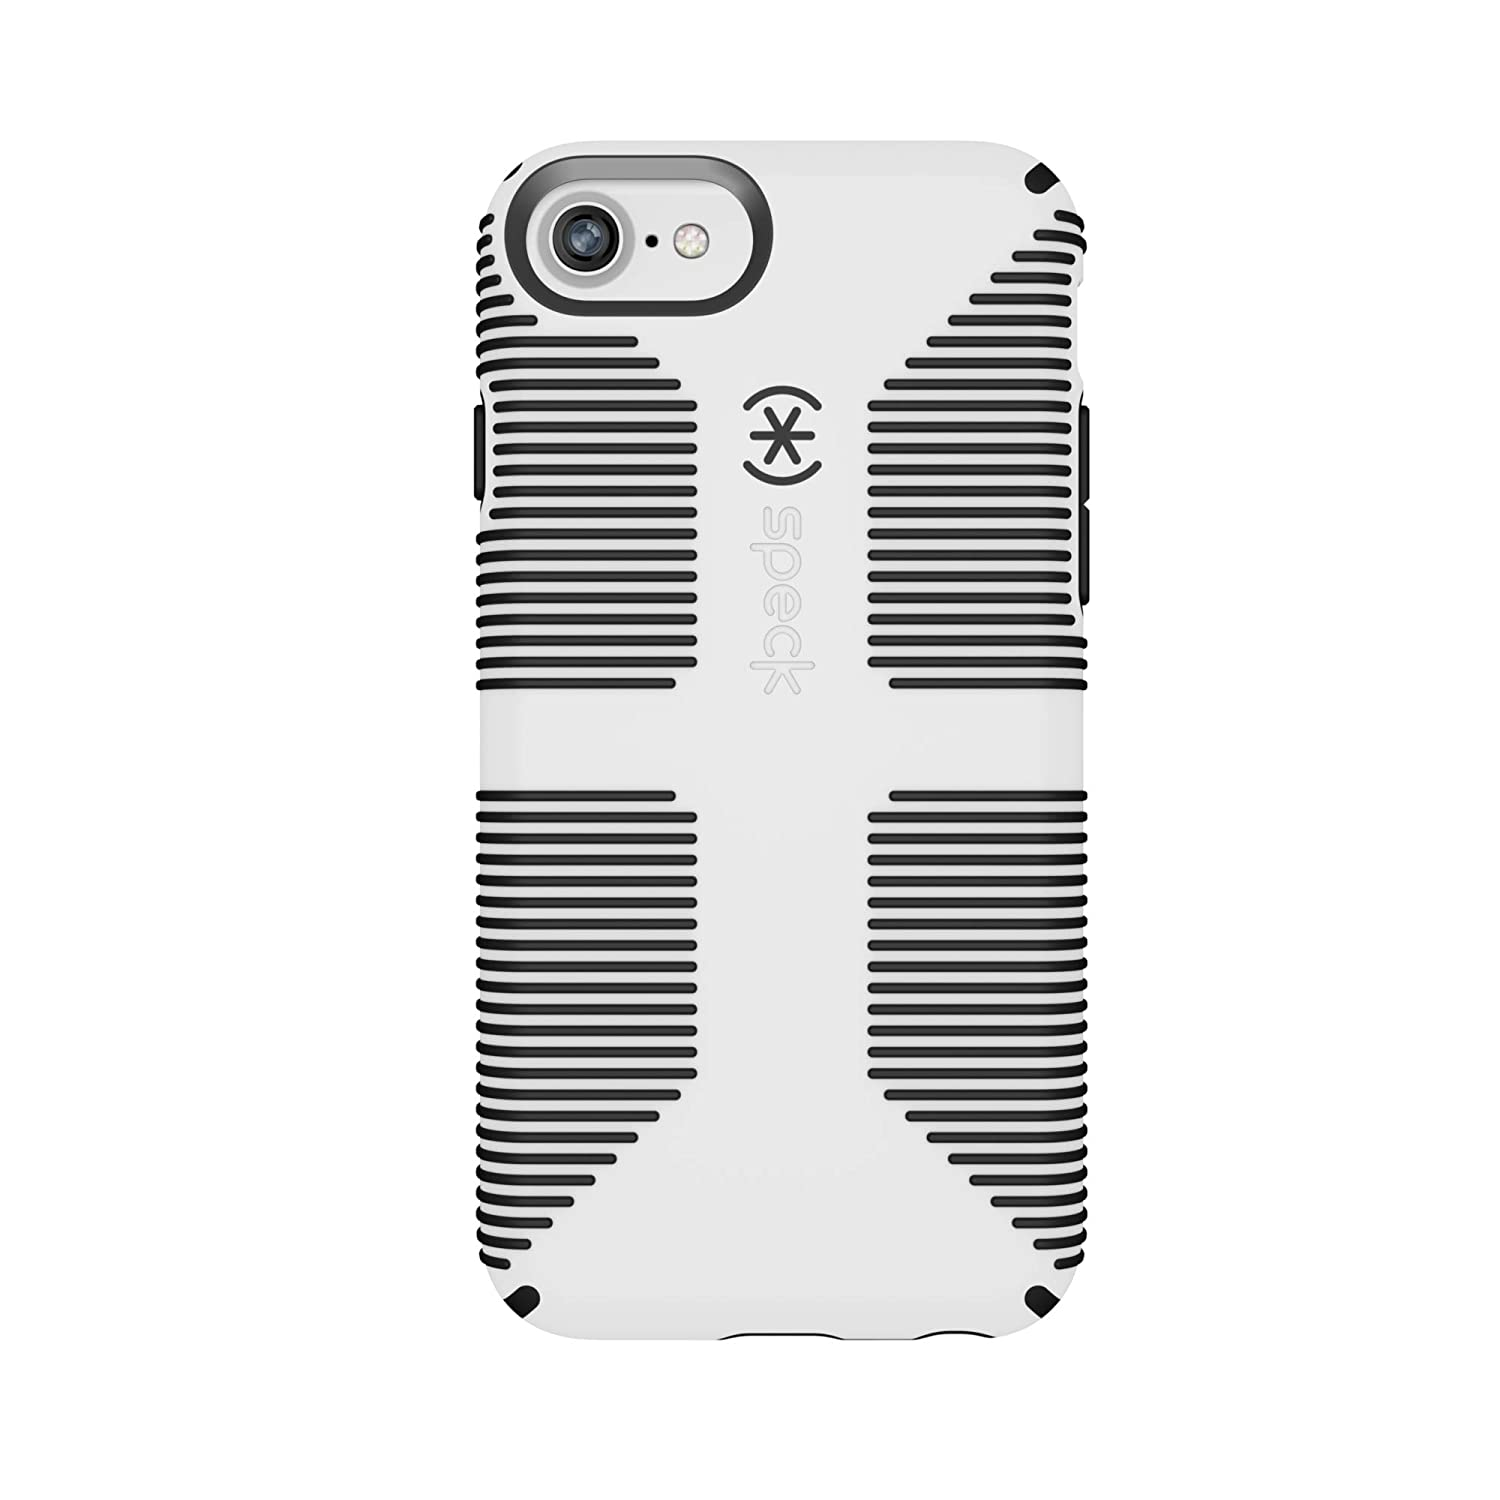 finest selection d1d48 e294a Speck Products CandyShell Grip iPhone 7 Case (Also Fits iPhone 6 and iPhone  6S), White/Black